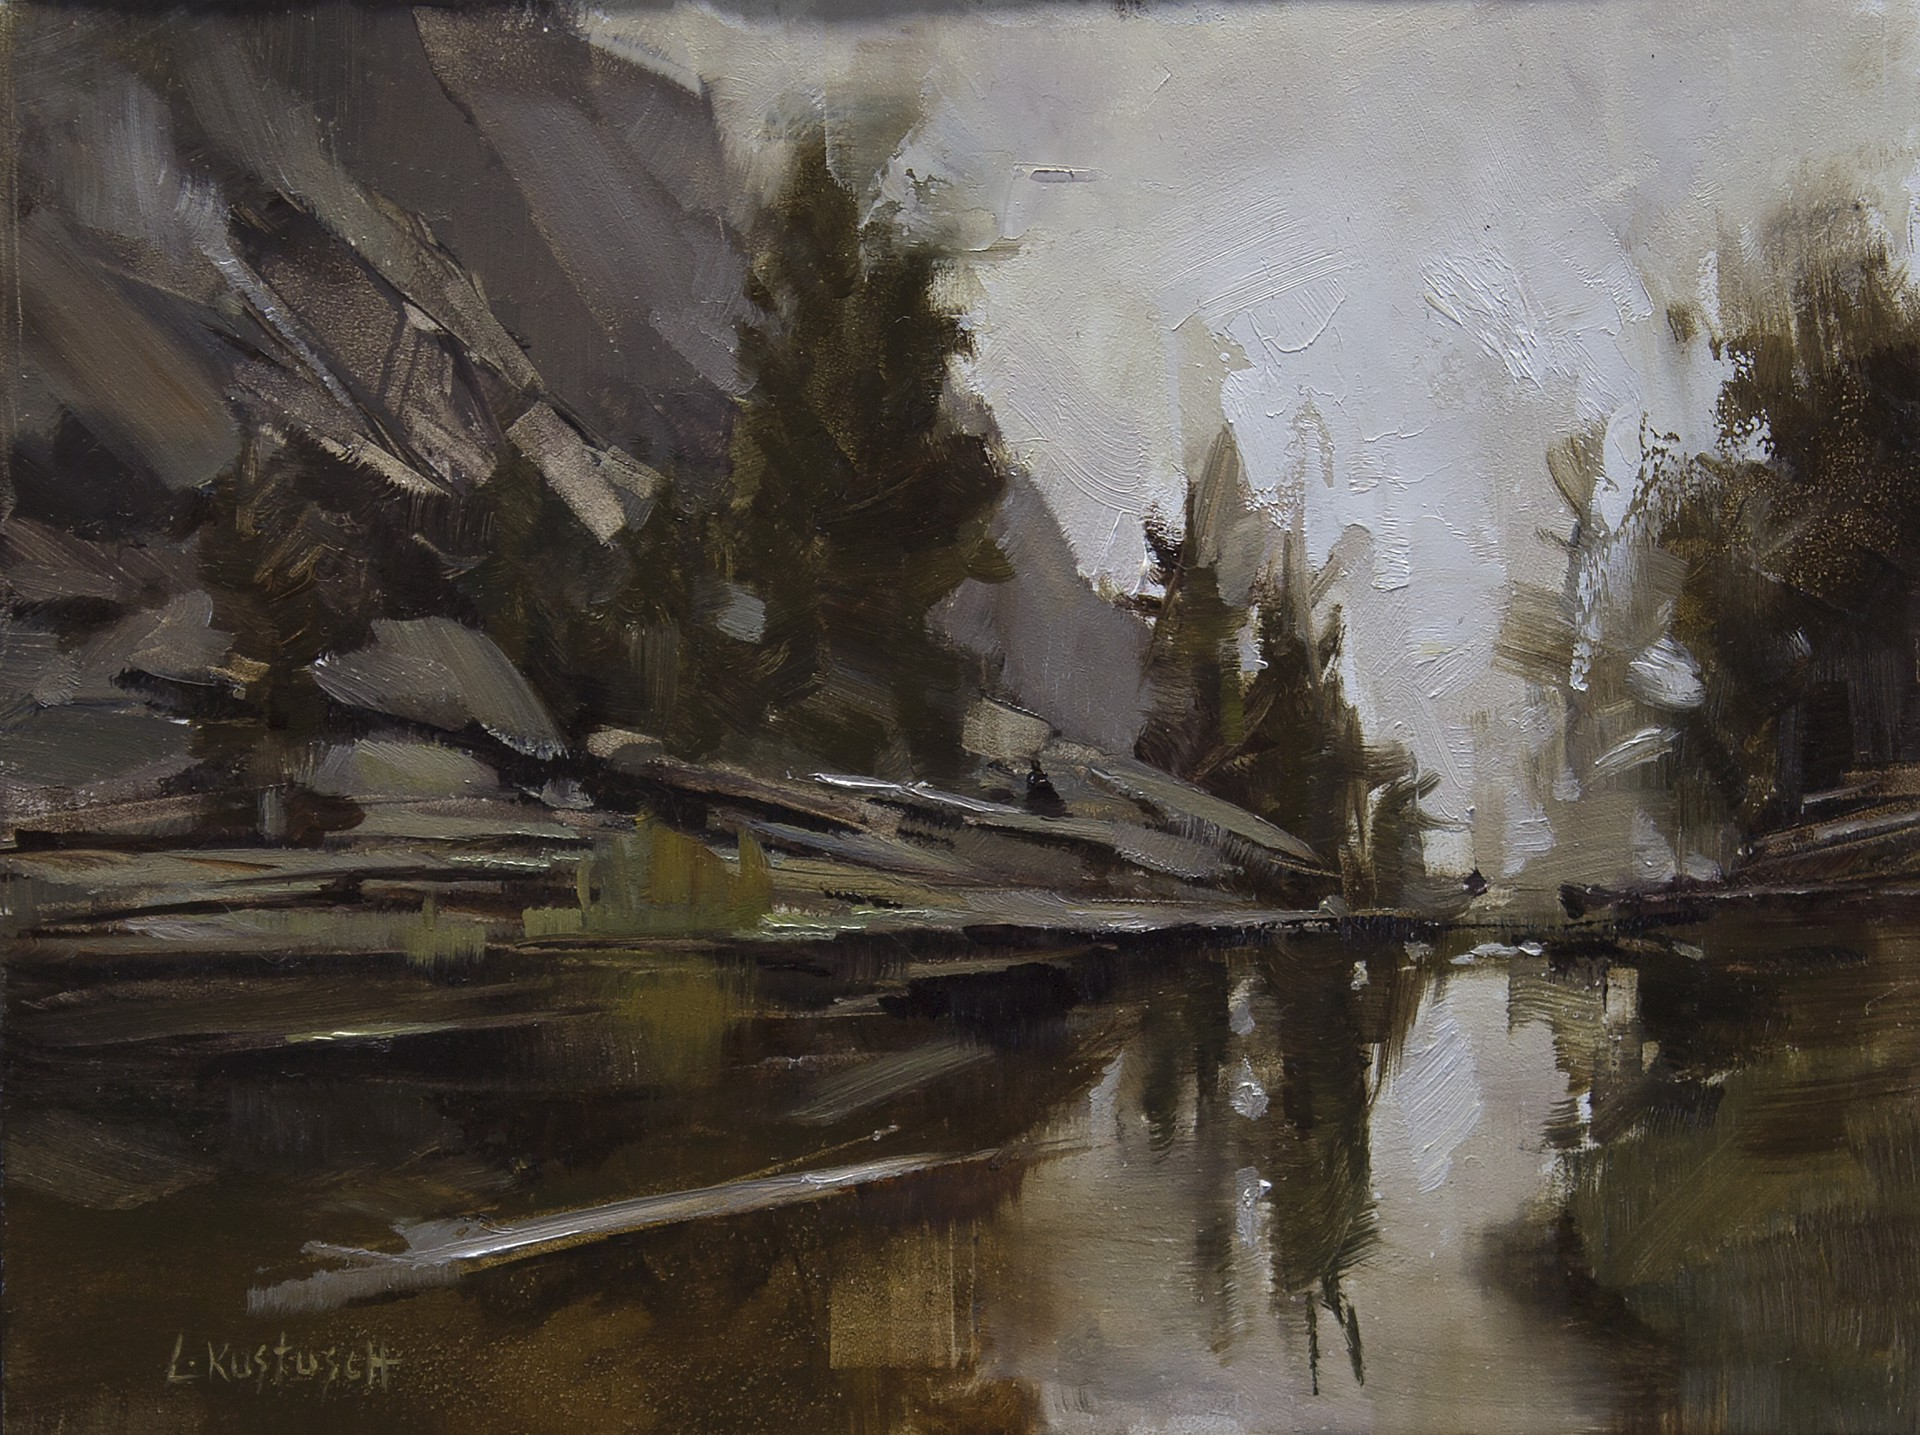 Plein Air at Gem Lake by Lindsey Kustusch